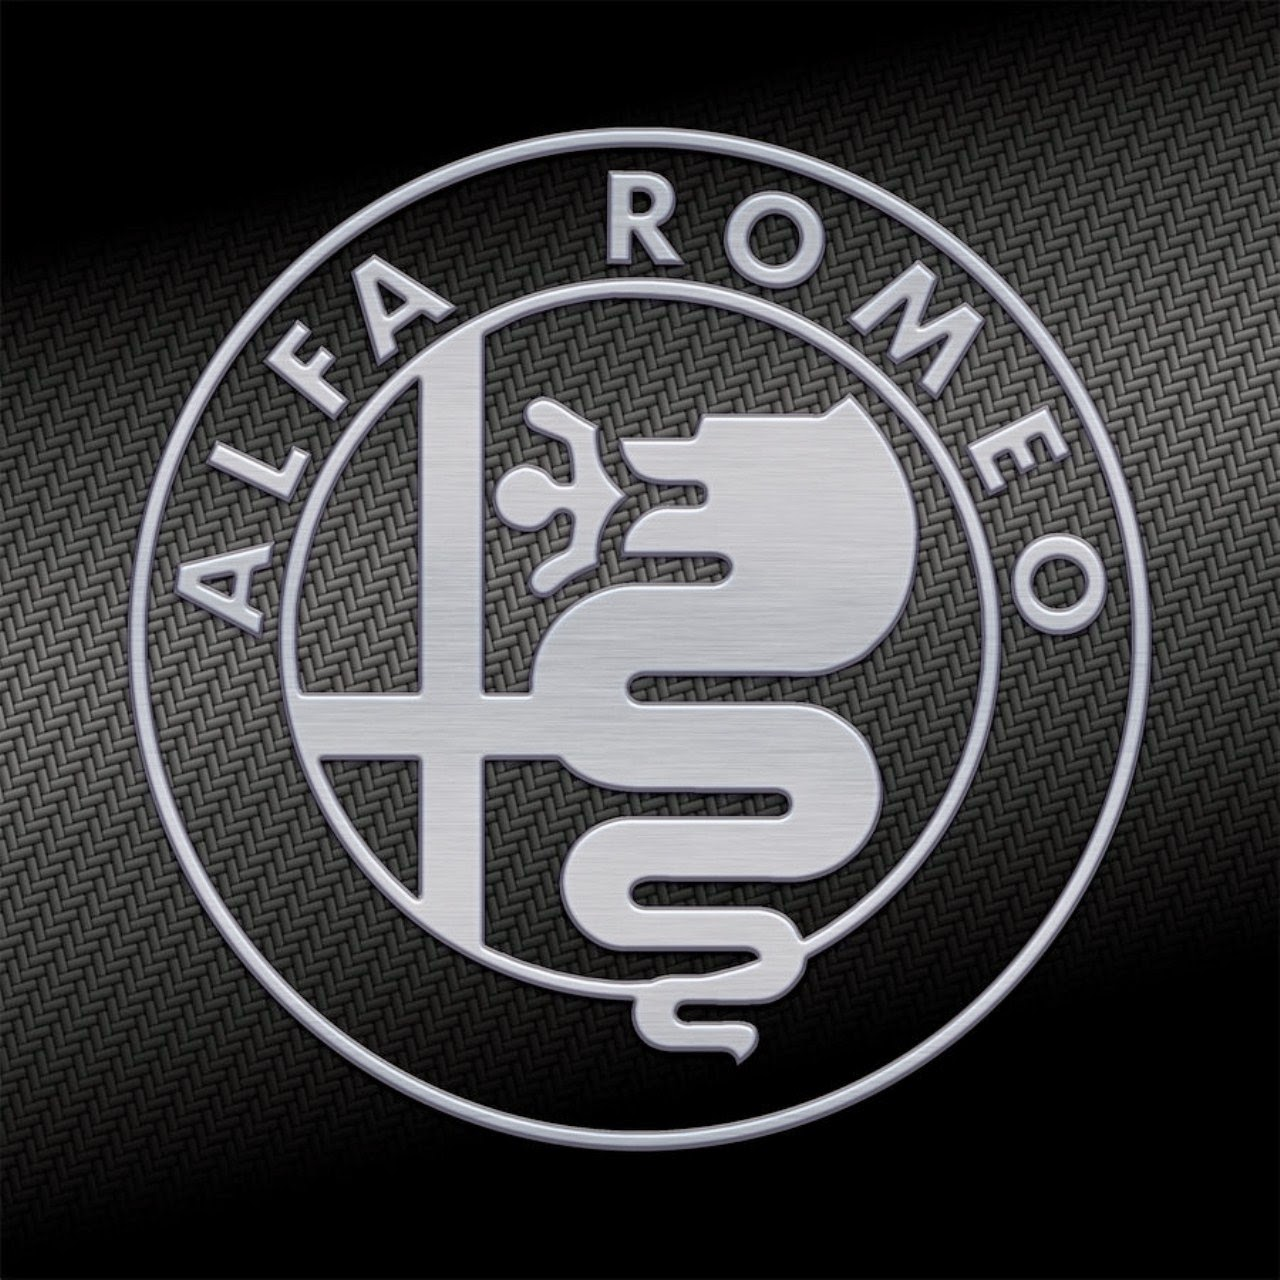 2014 alfa romeo car logo download wallpapers prices information wallpapers. Black Bedroom Furniture Sets. Home Design Ideas